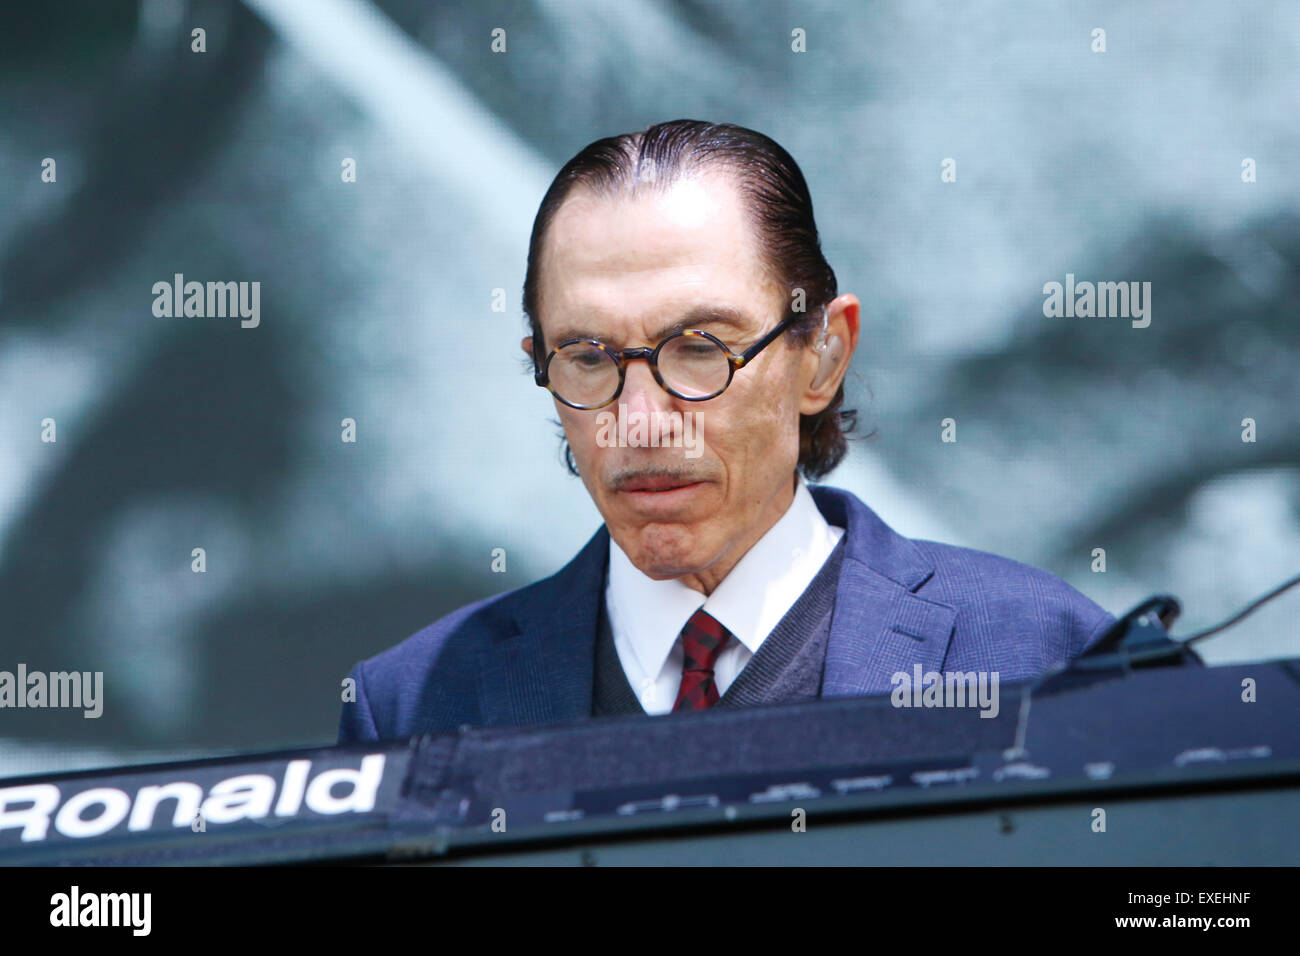 Ron Mael High Resolution Stock Photography and Images - Alamy